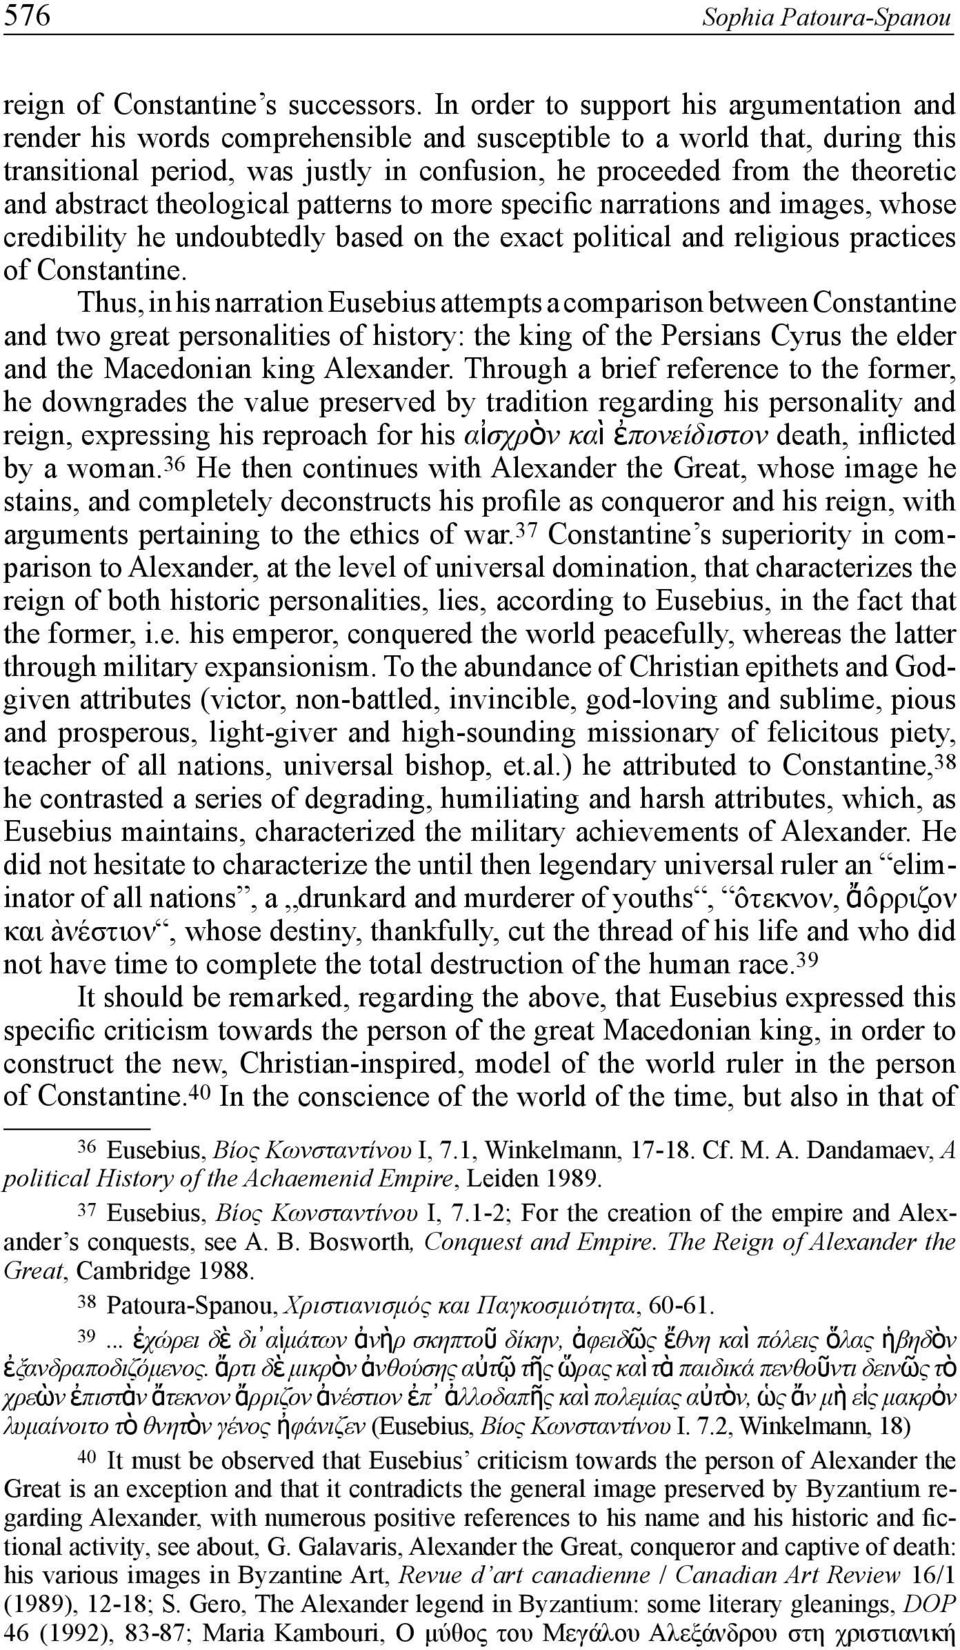 and abstract theological patterns to more specific narrations and images, whose credibility he undoubtedly based on the exact political and religious practices of Constantine.